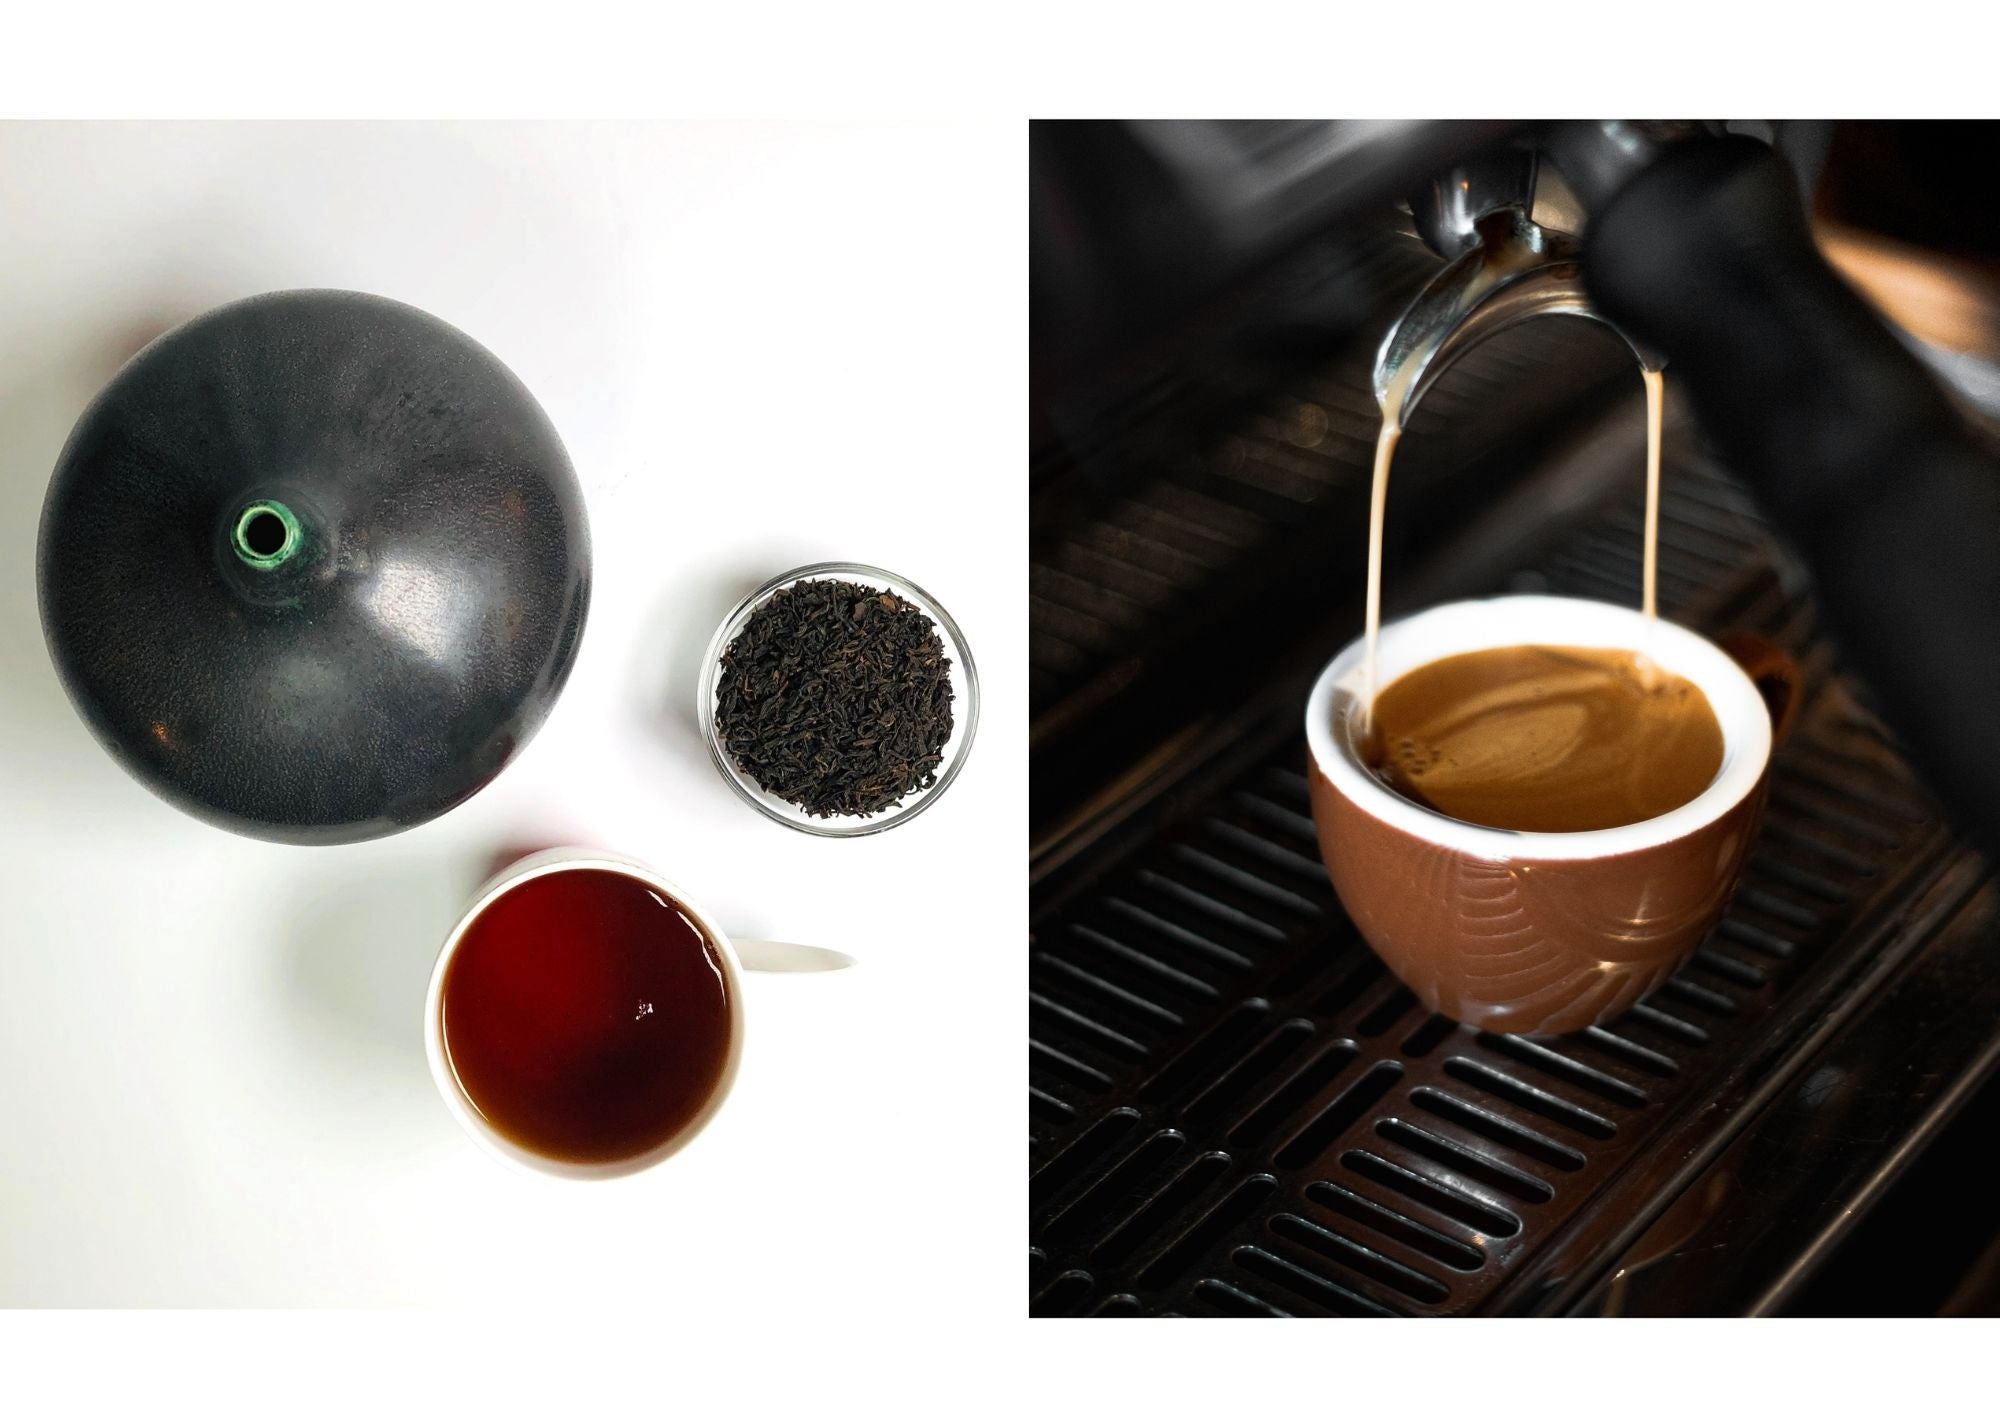 cup of brewed tea next to a cup of espresso coffee